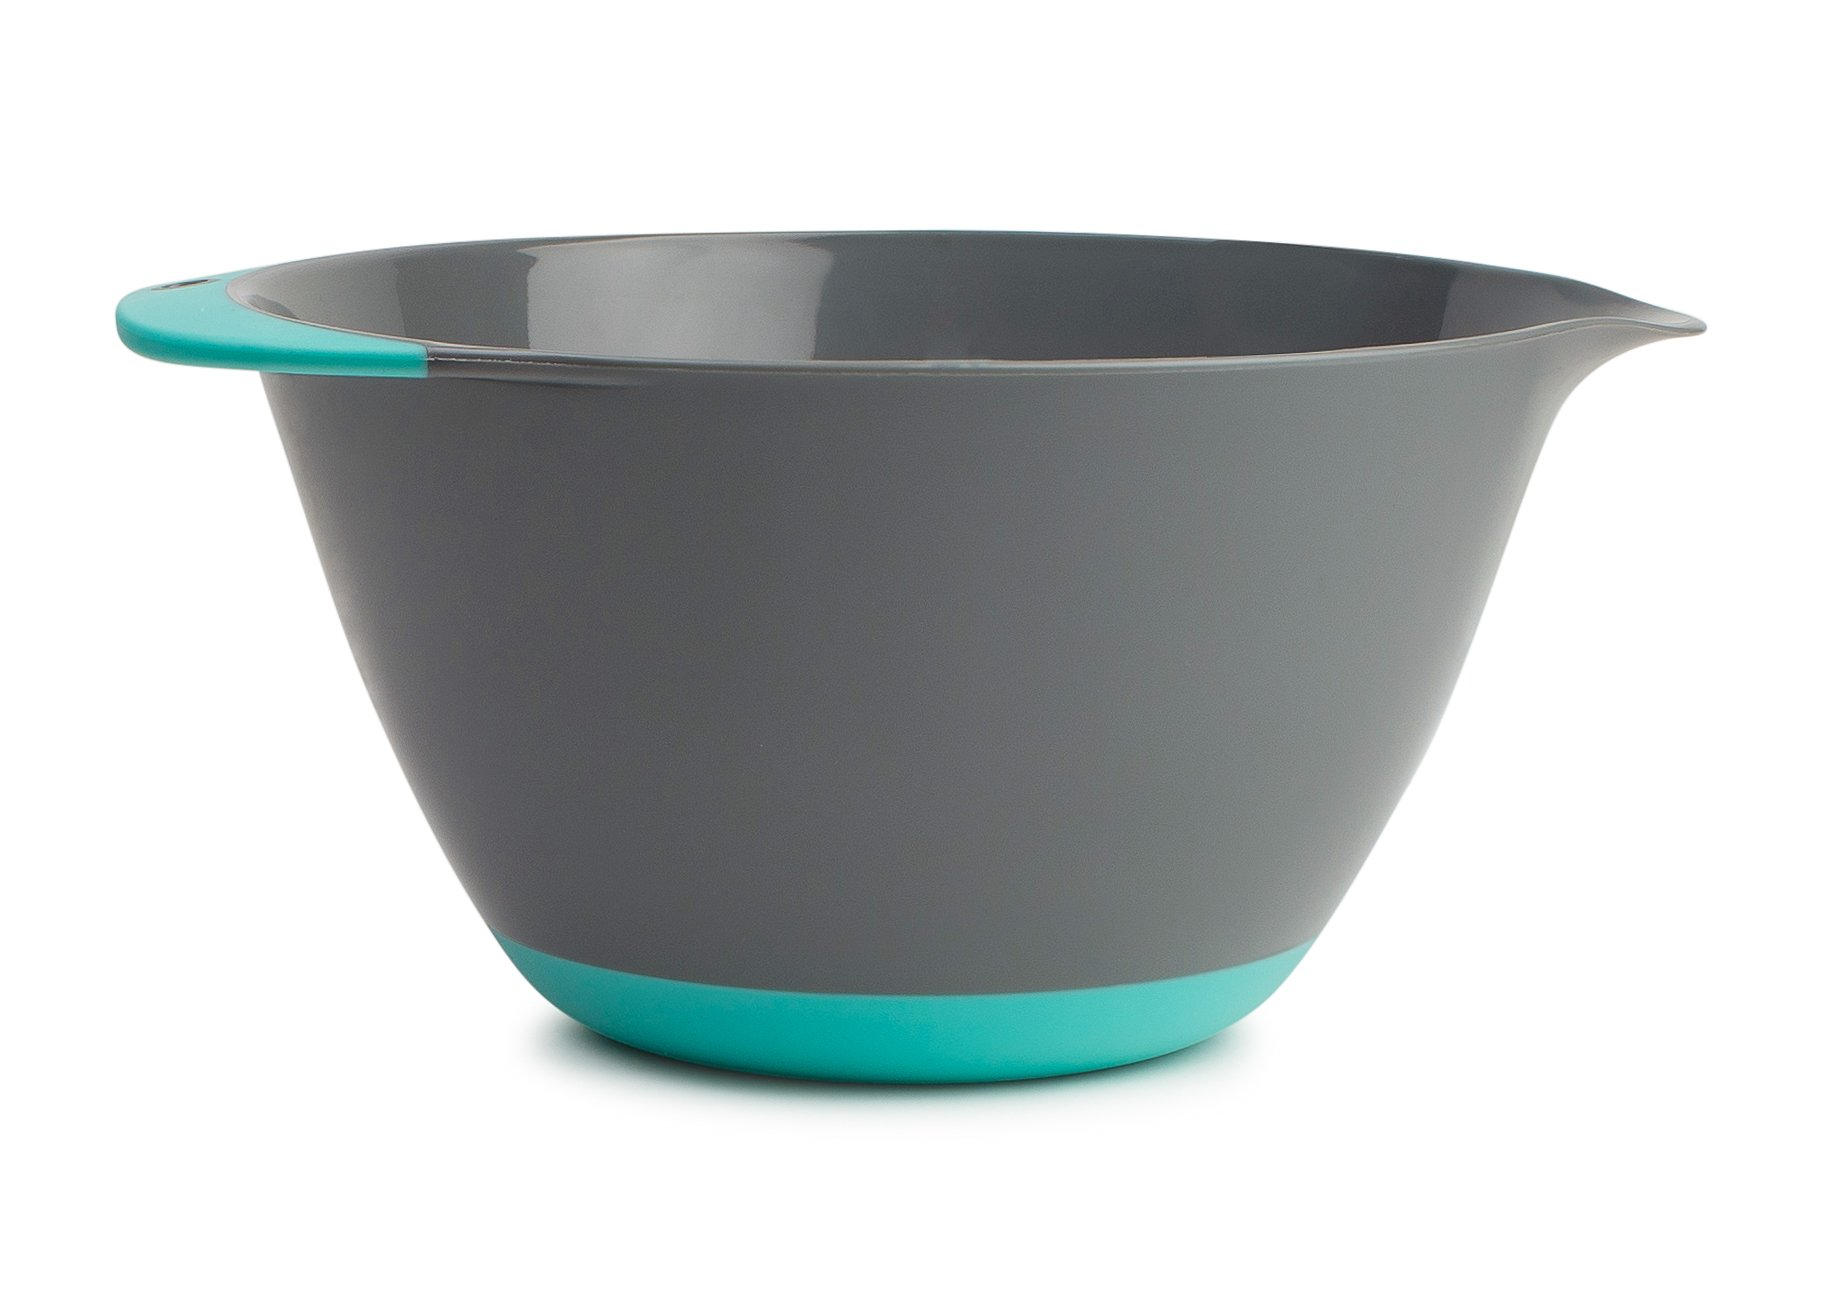 Kukpo Easy Grip Mixing Bowl - X-LARGE 6.5 QT Easy Grip Handle- And Non Skid Bottom